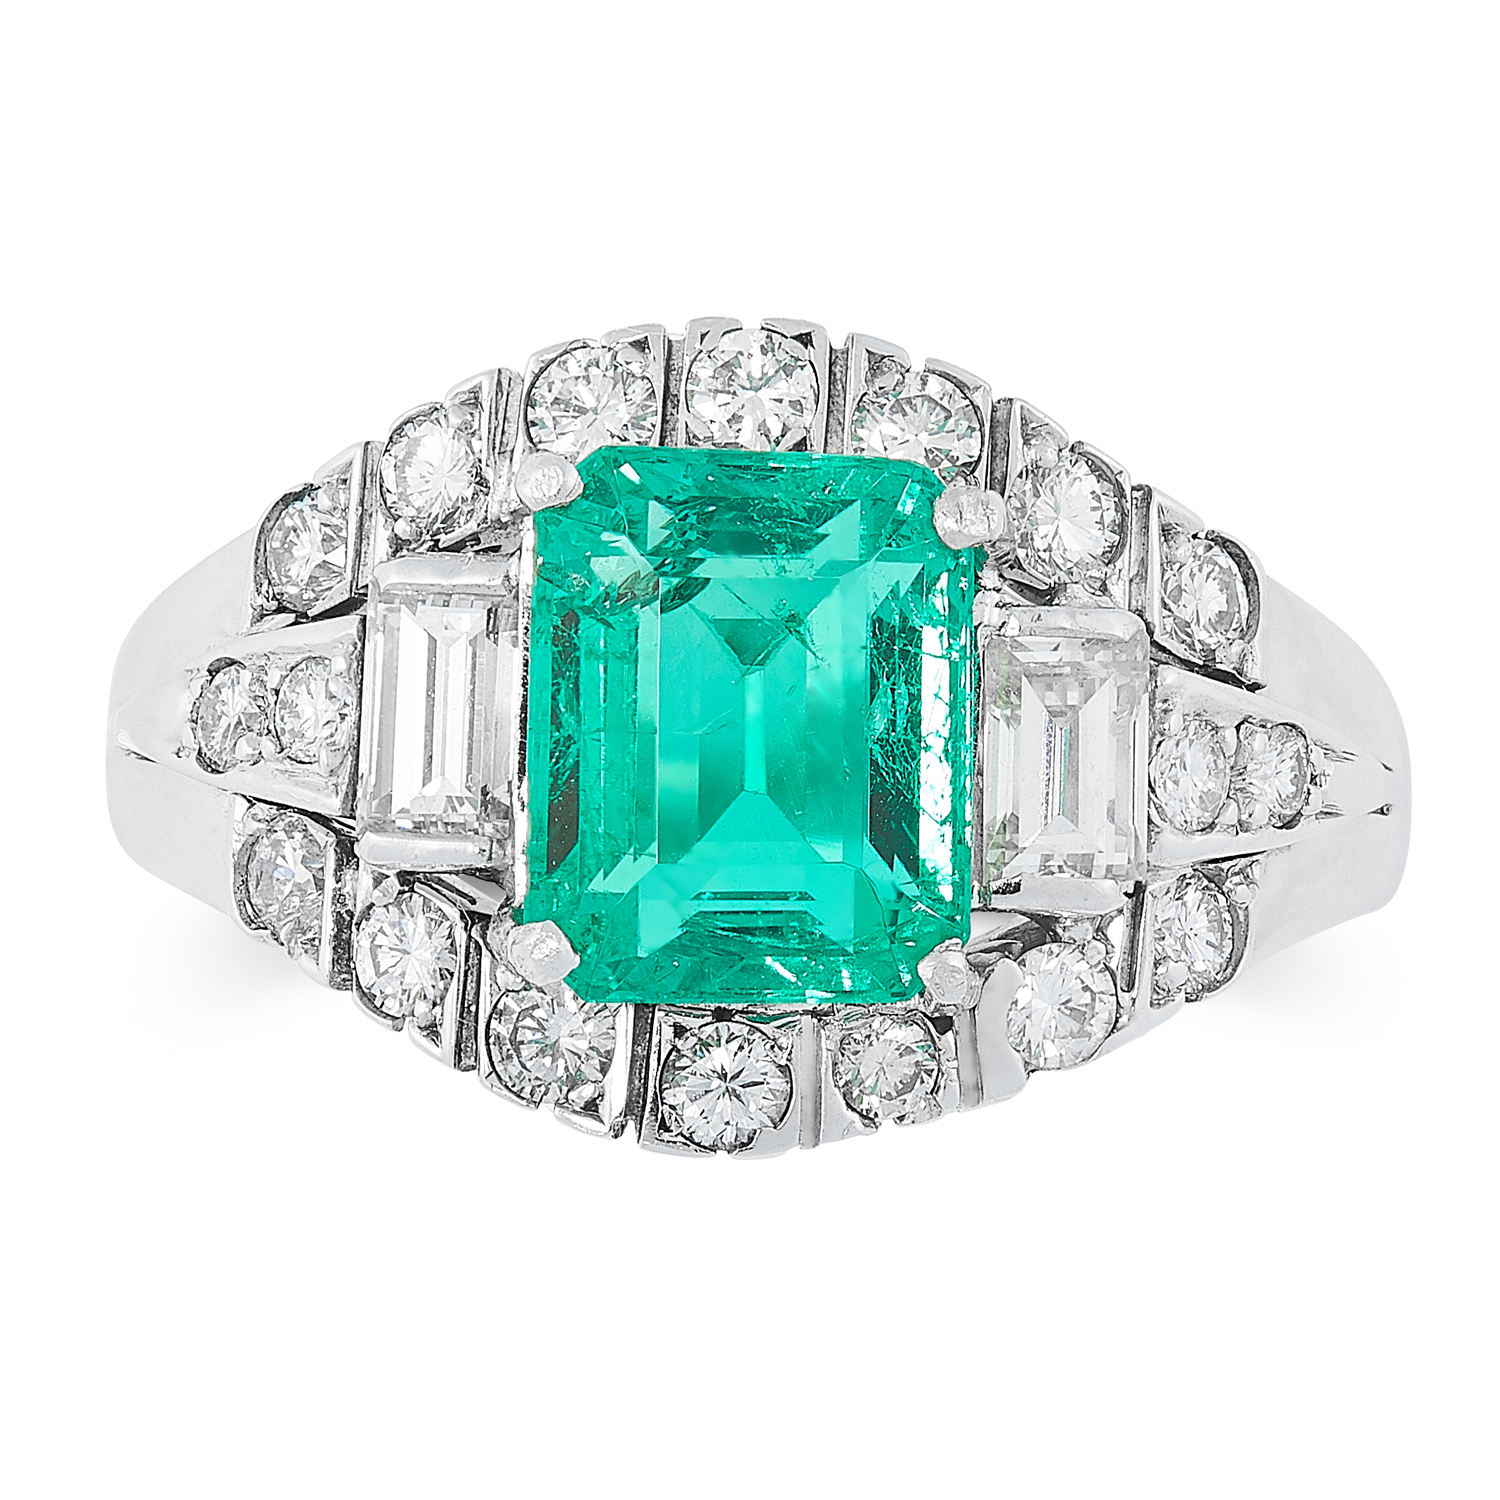 A COLOMBIAN EMERALD AND DIAMOND RING CIRCA 1950 set with an emerald cut emerald of 2.14 carats